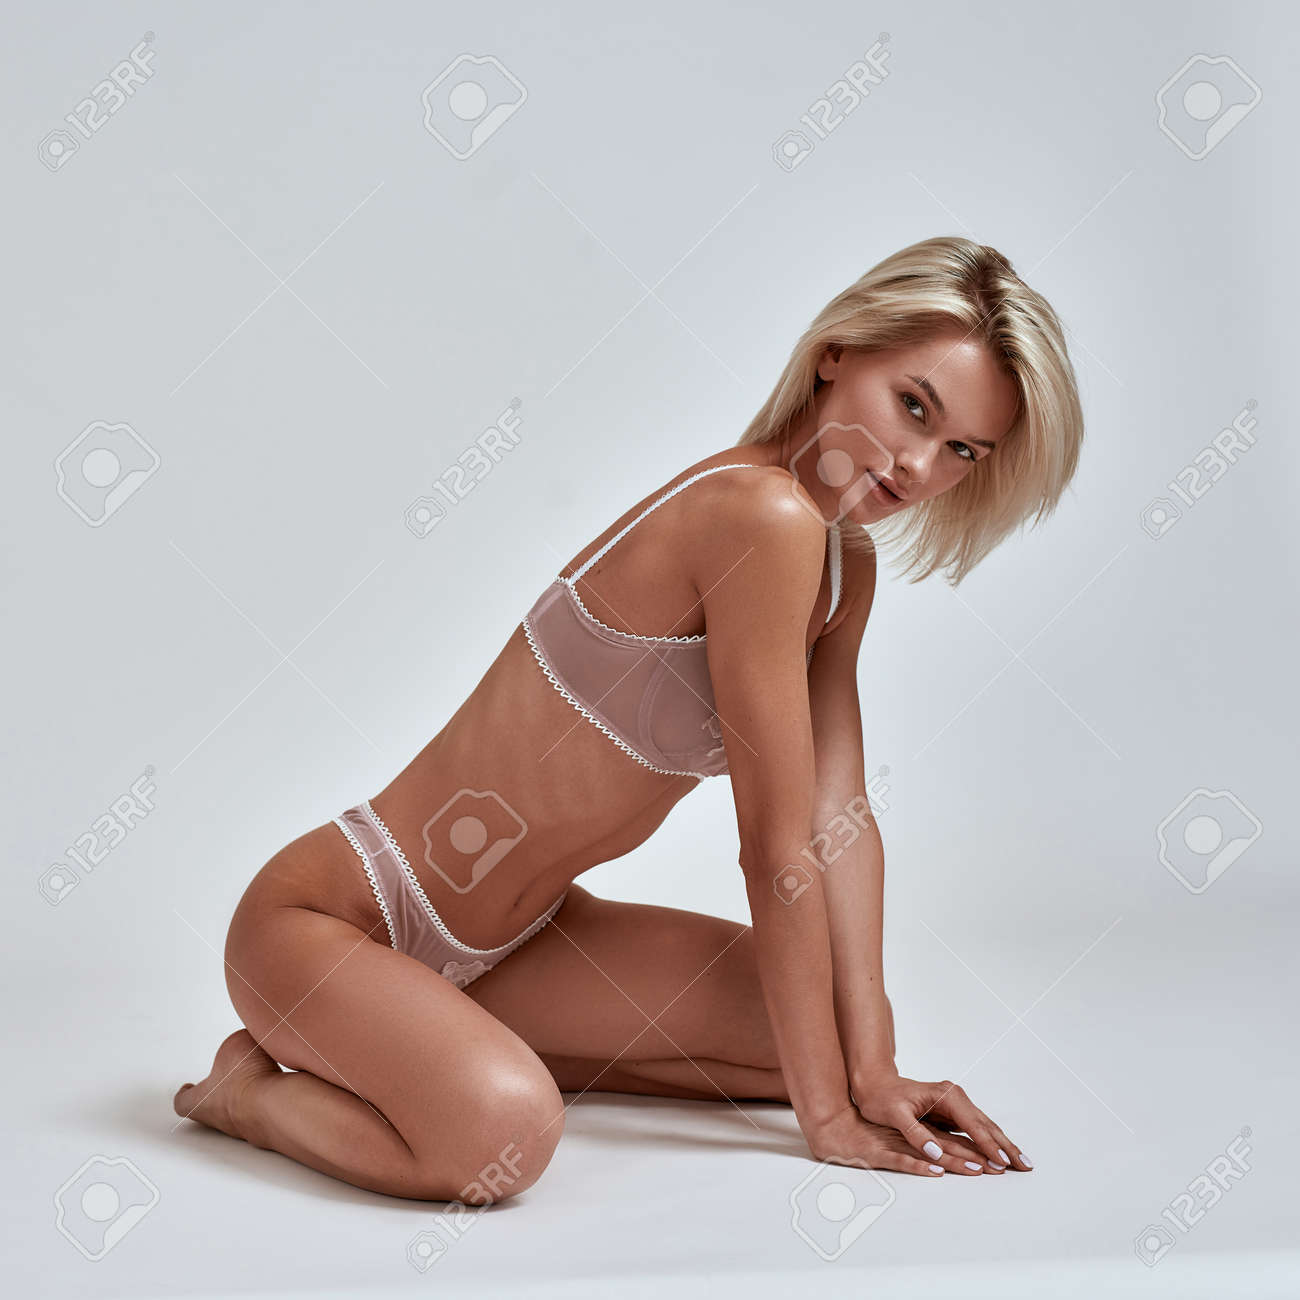 Young sensual woman with perfect slim body wearing lingerie looking playful at camera while posing sitting isolated over grey background - 165041939